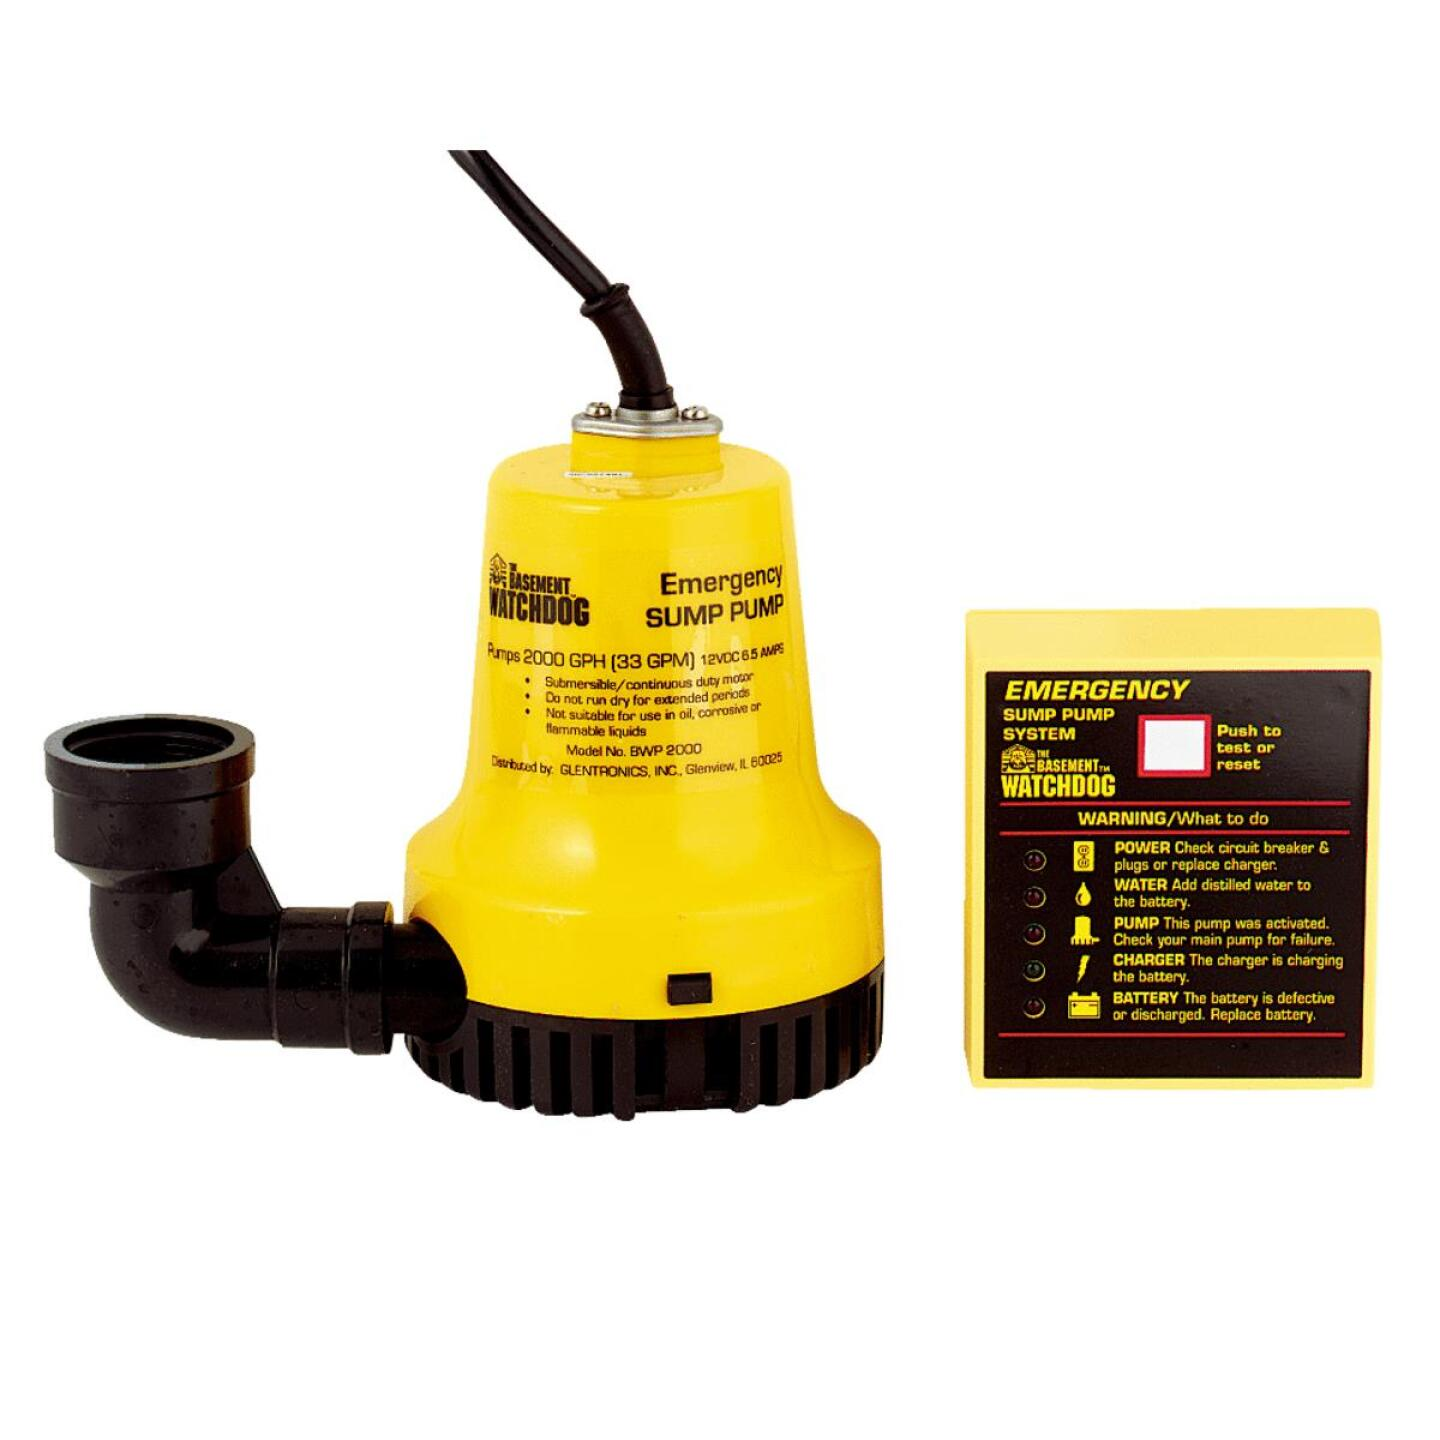 The Basement Watchdog Emergency Backup Sump Pump System Image 1